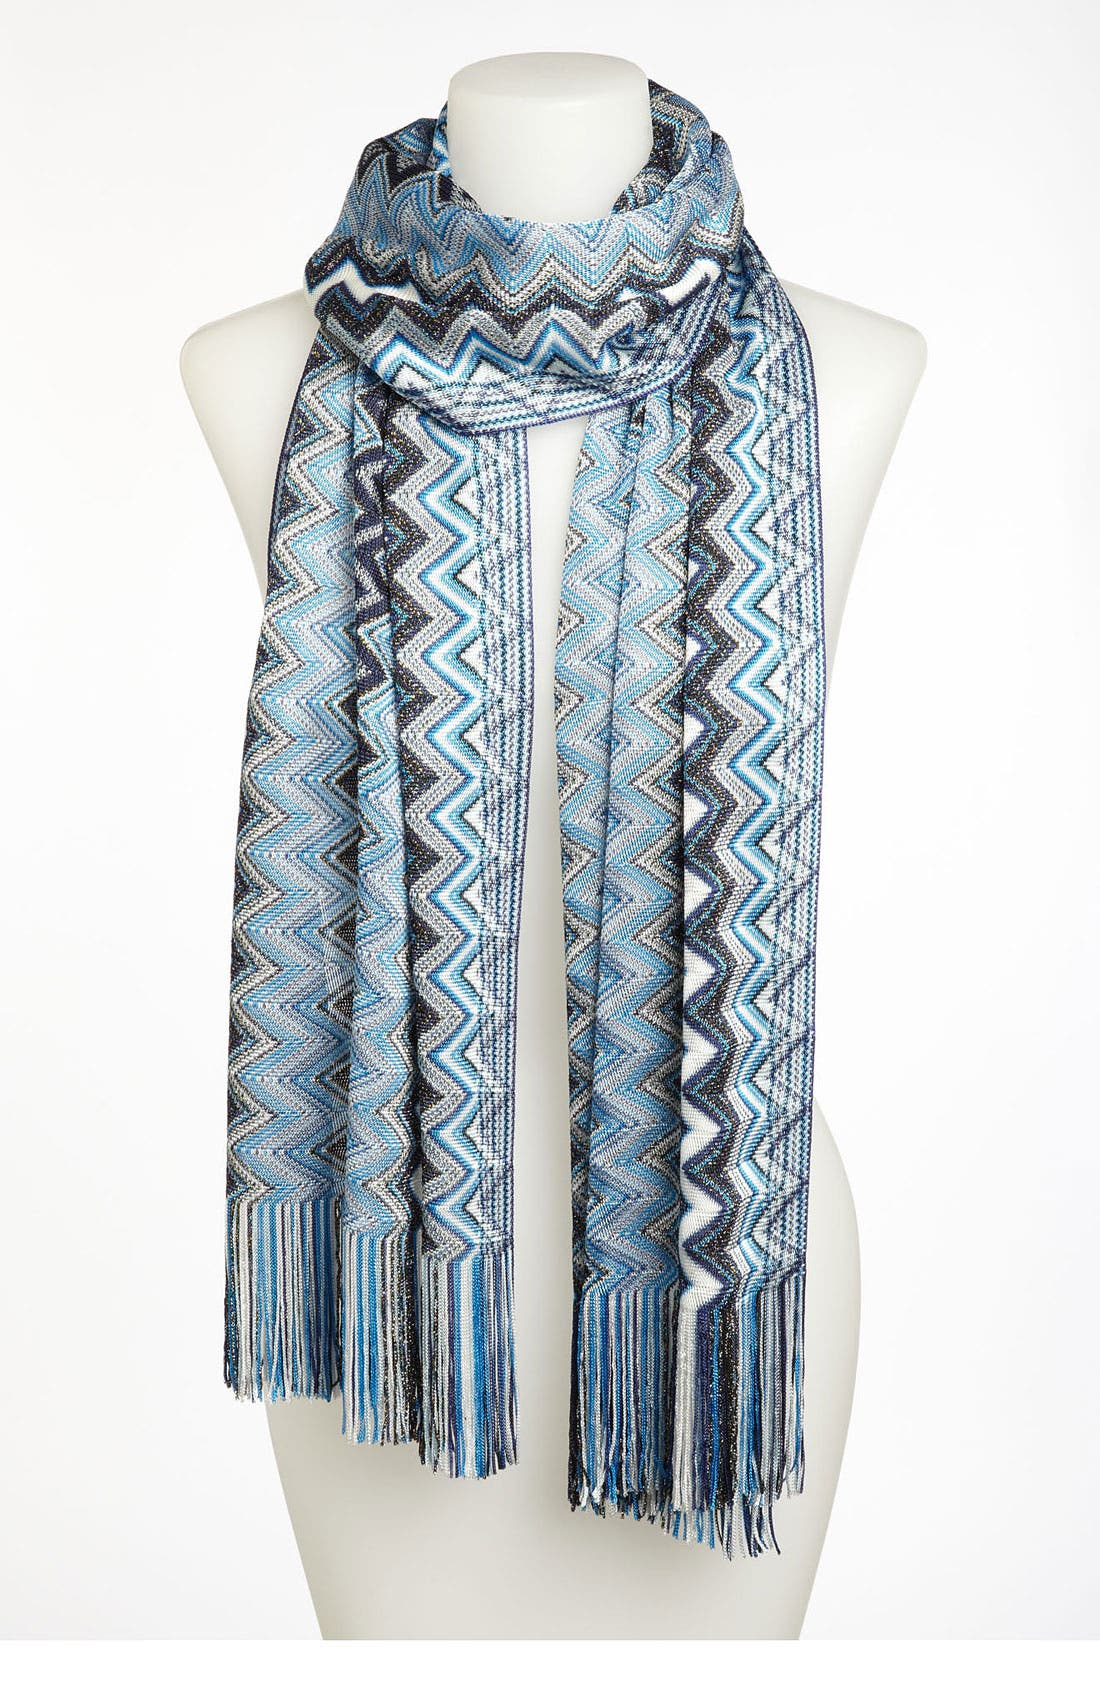 Alternate Image 1 Selected - Missoni 'Zag' Scarf